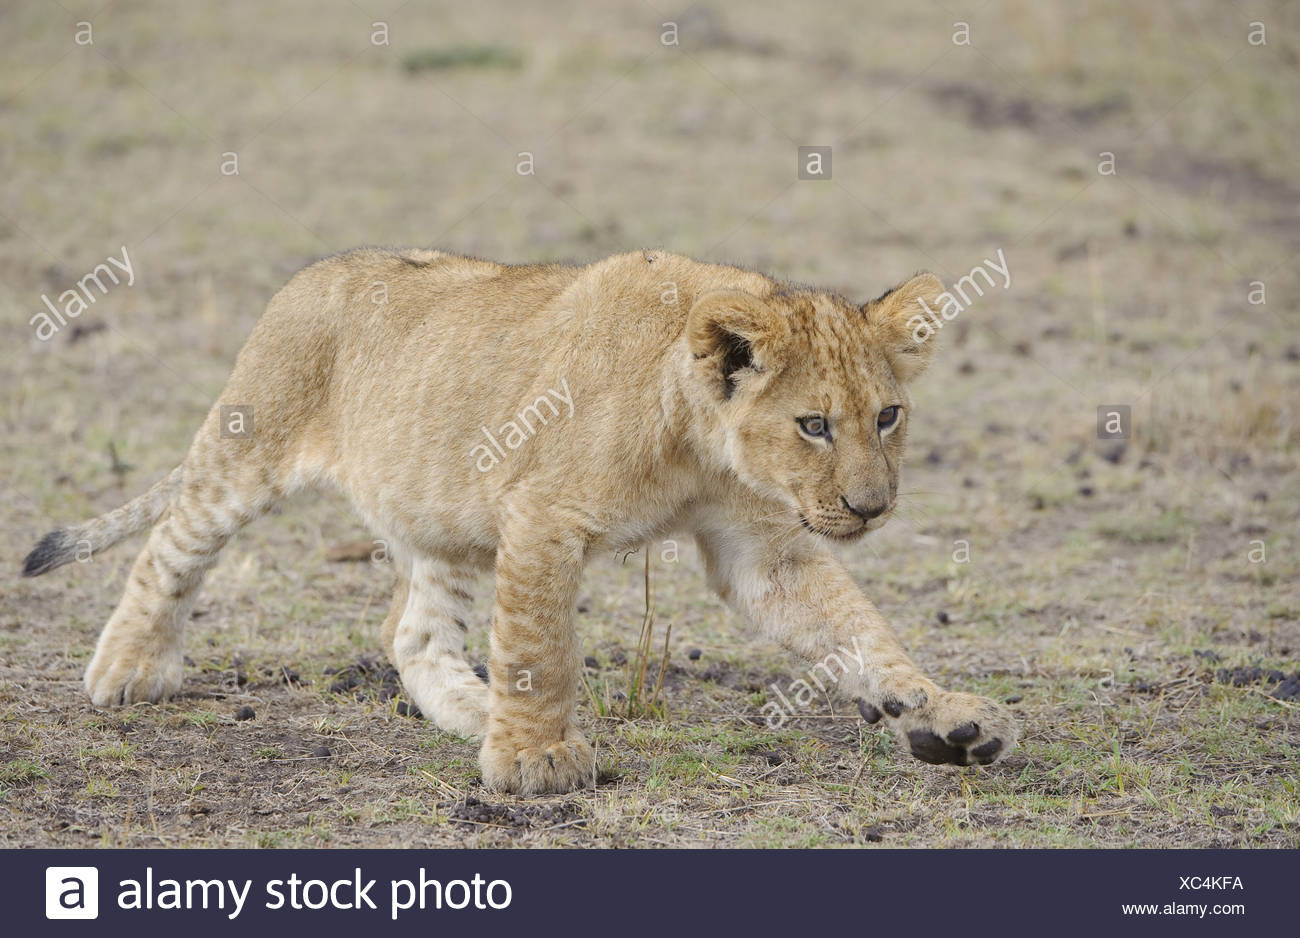 cubs cute energy fight fun kenya leo lion masai mara migration